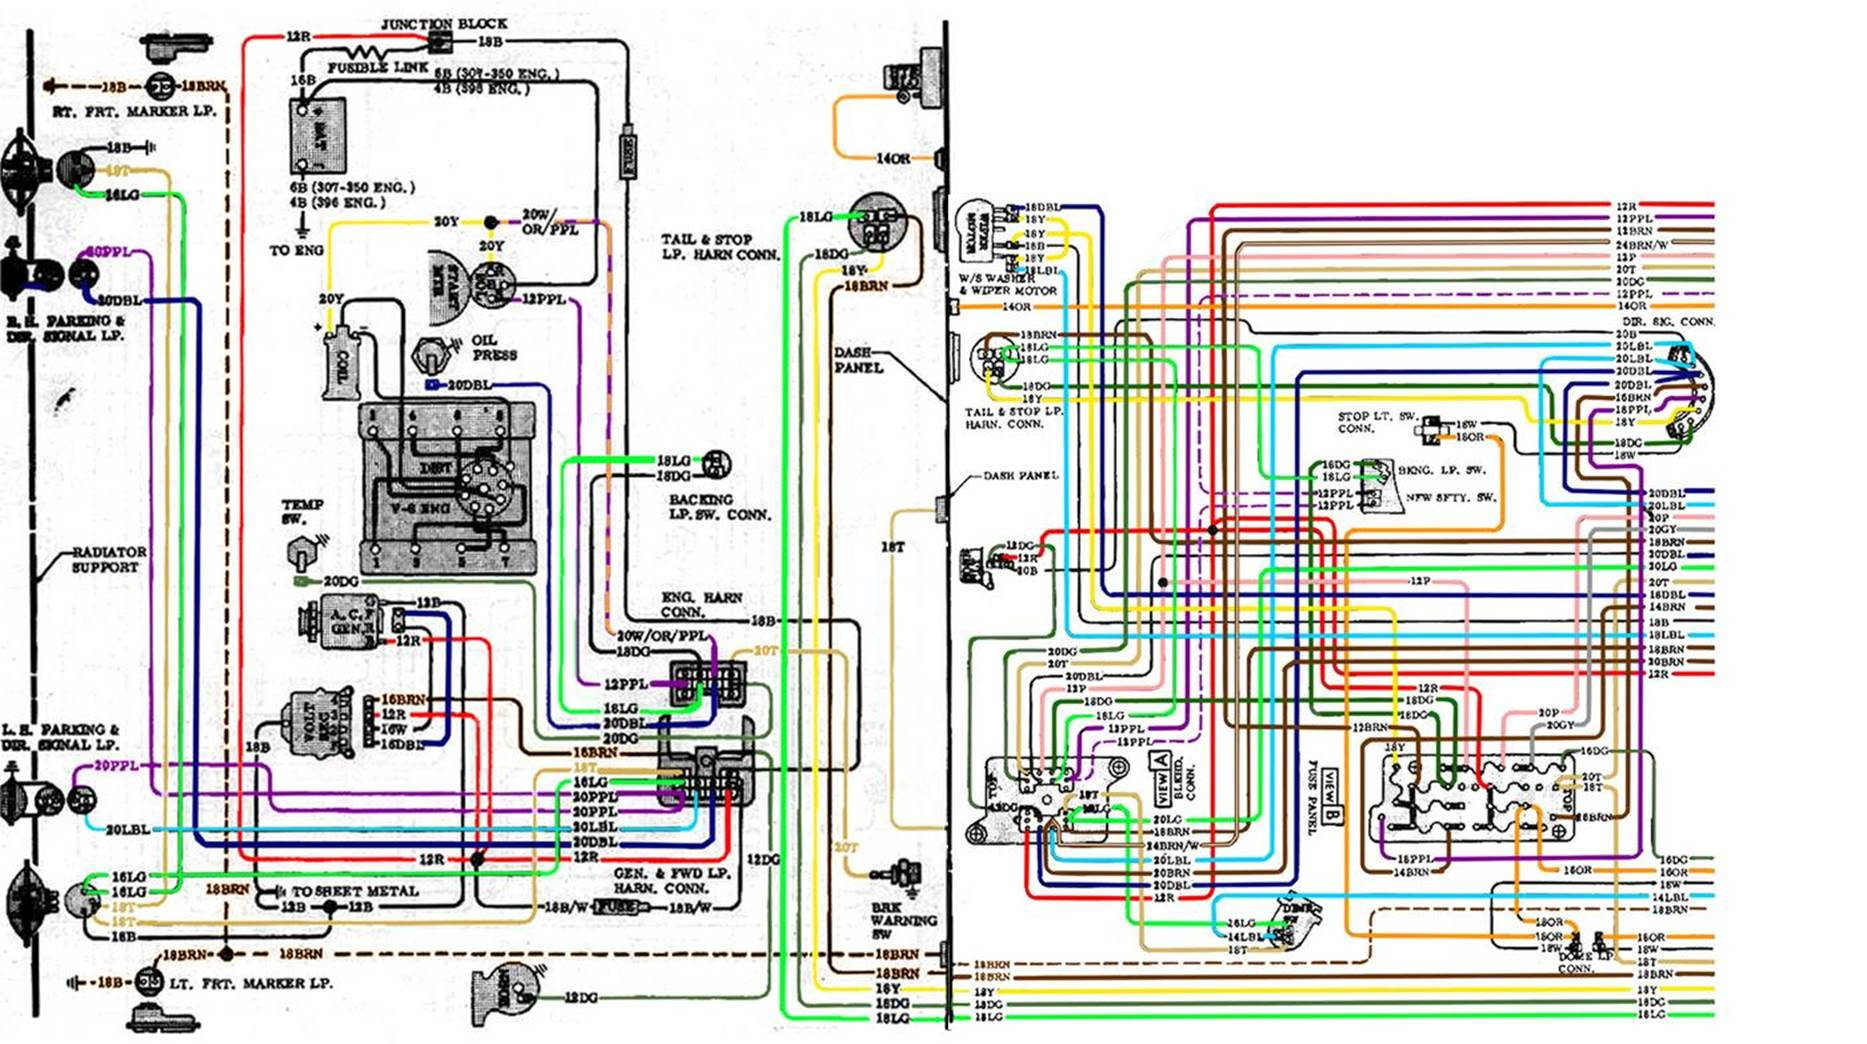 image002 67 72 chevy wiring diagram c10 wiring diagram at panicattacktreatment.co